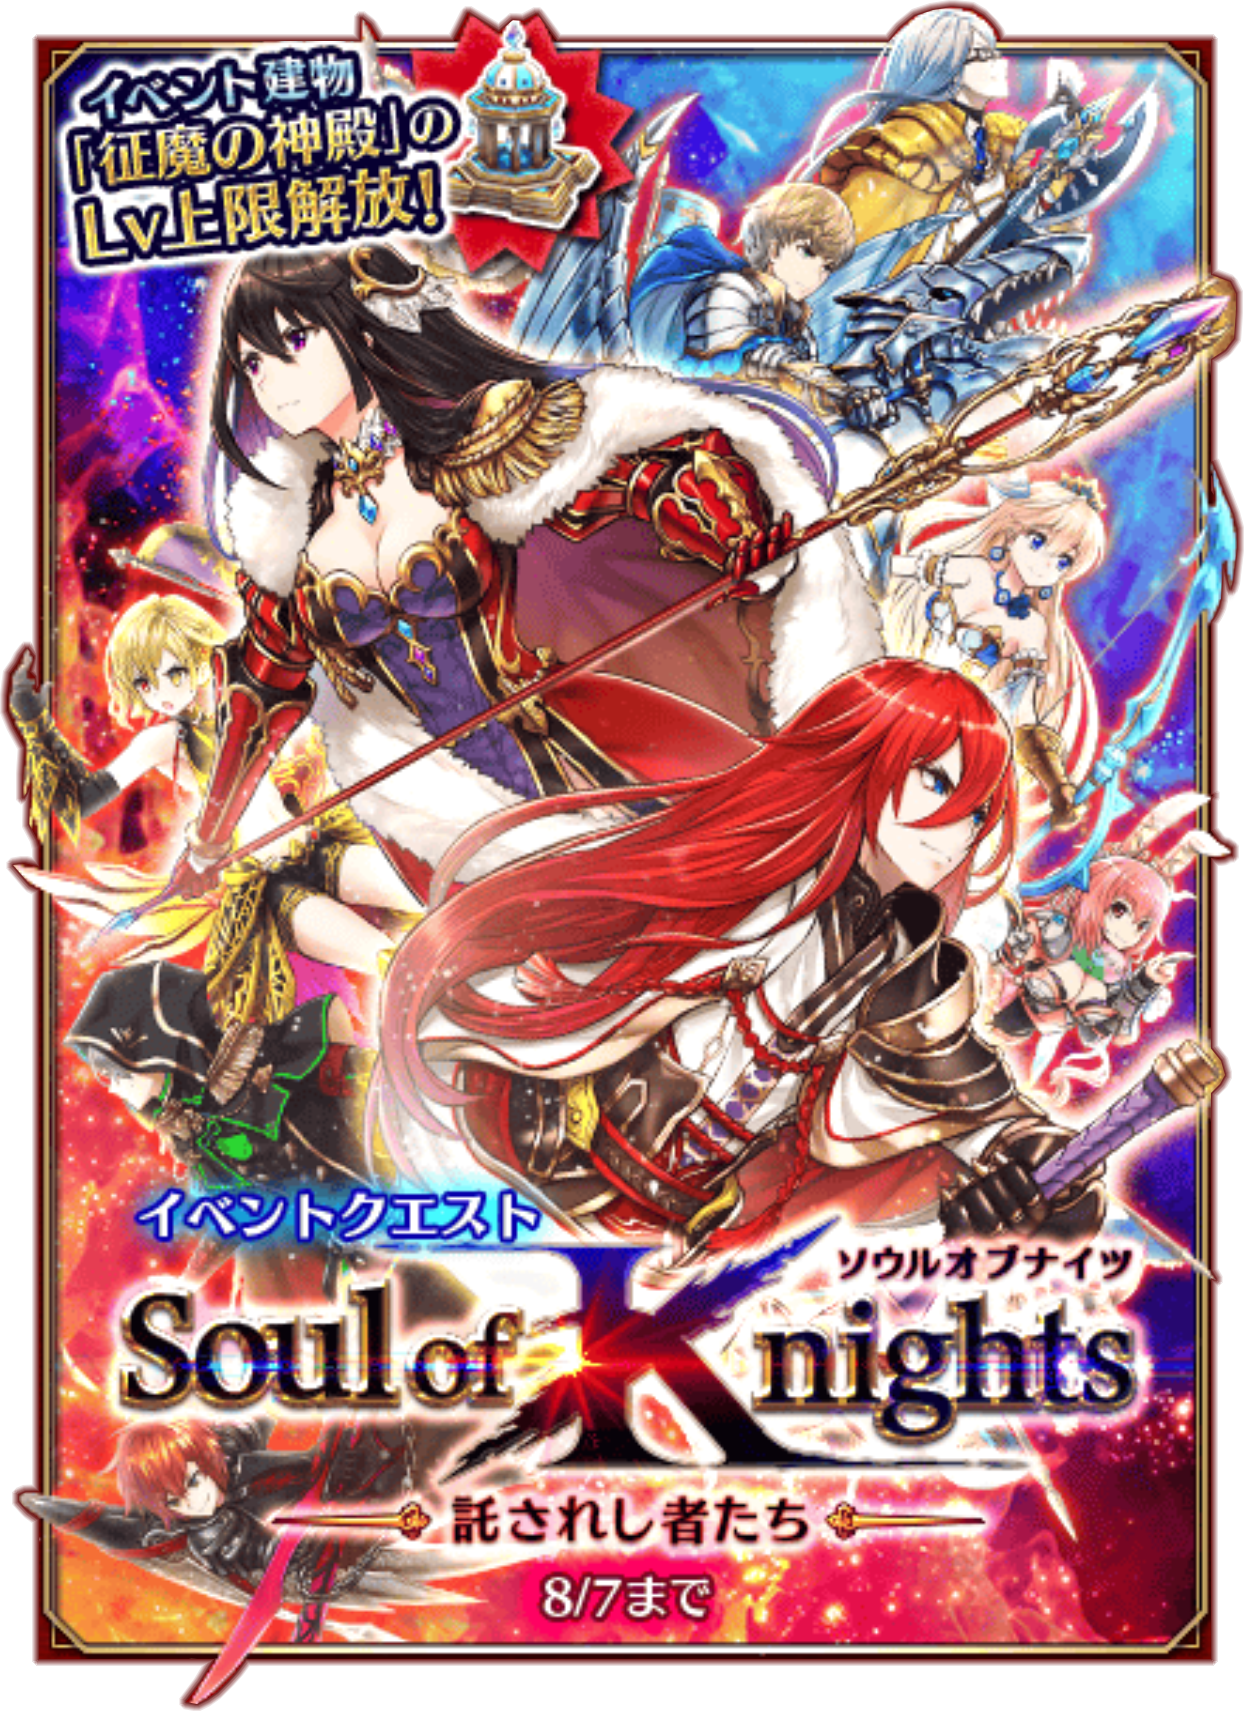 Soul of Knights